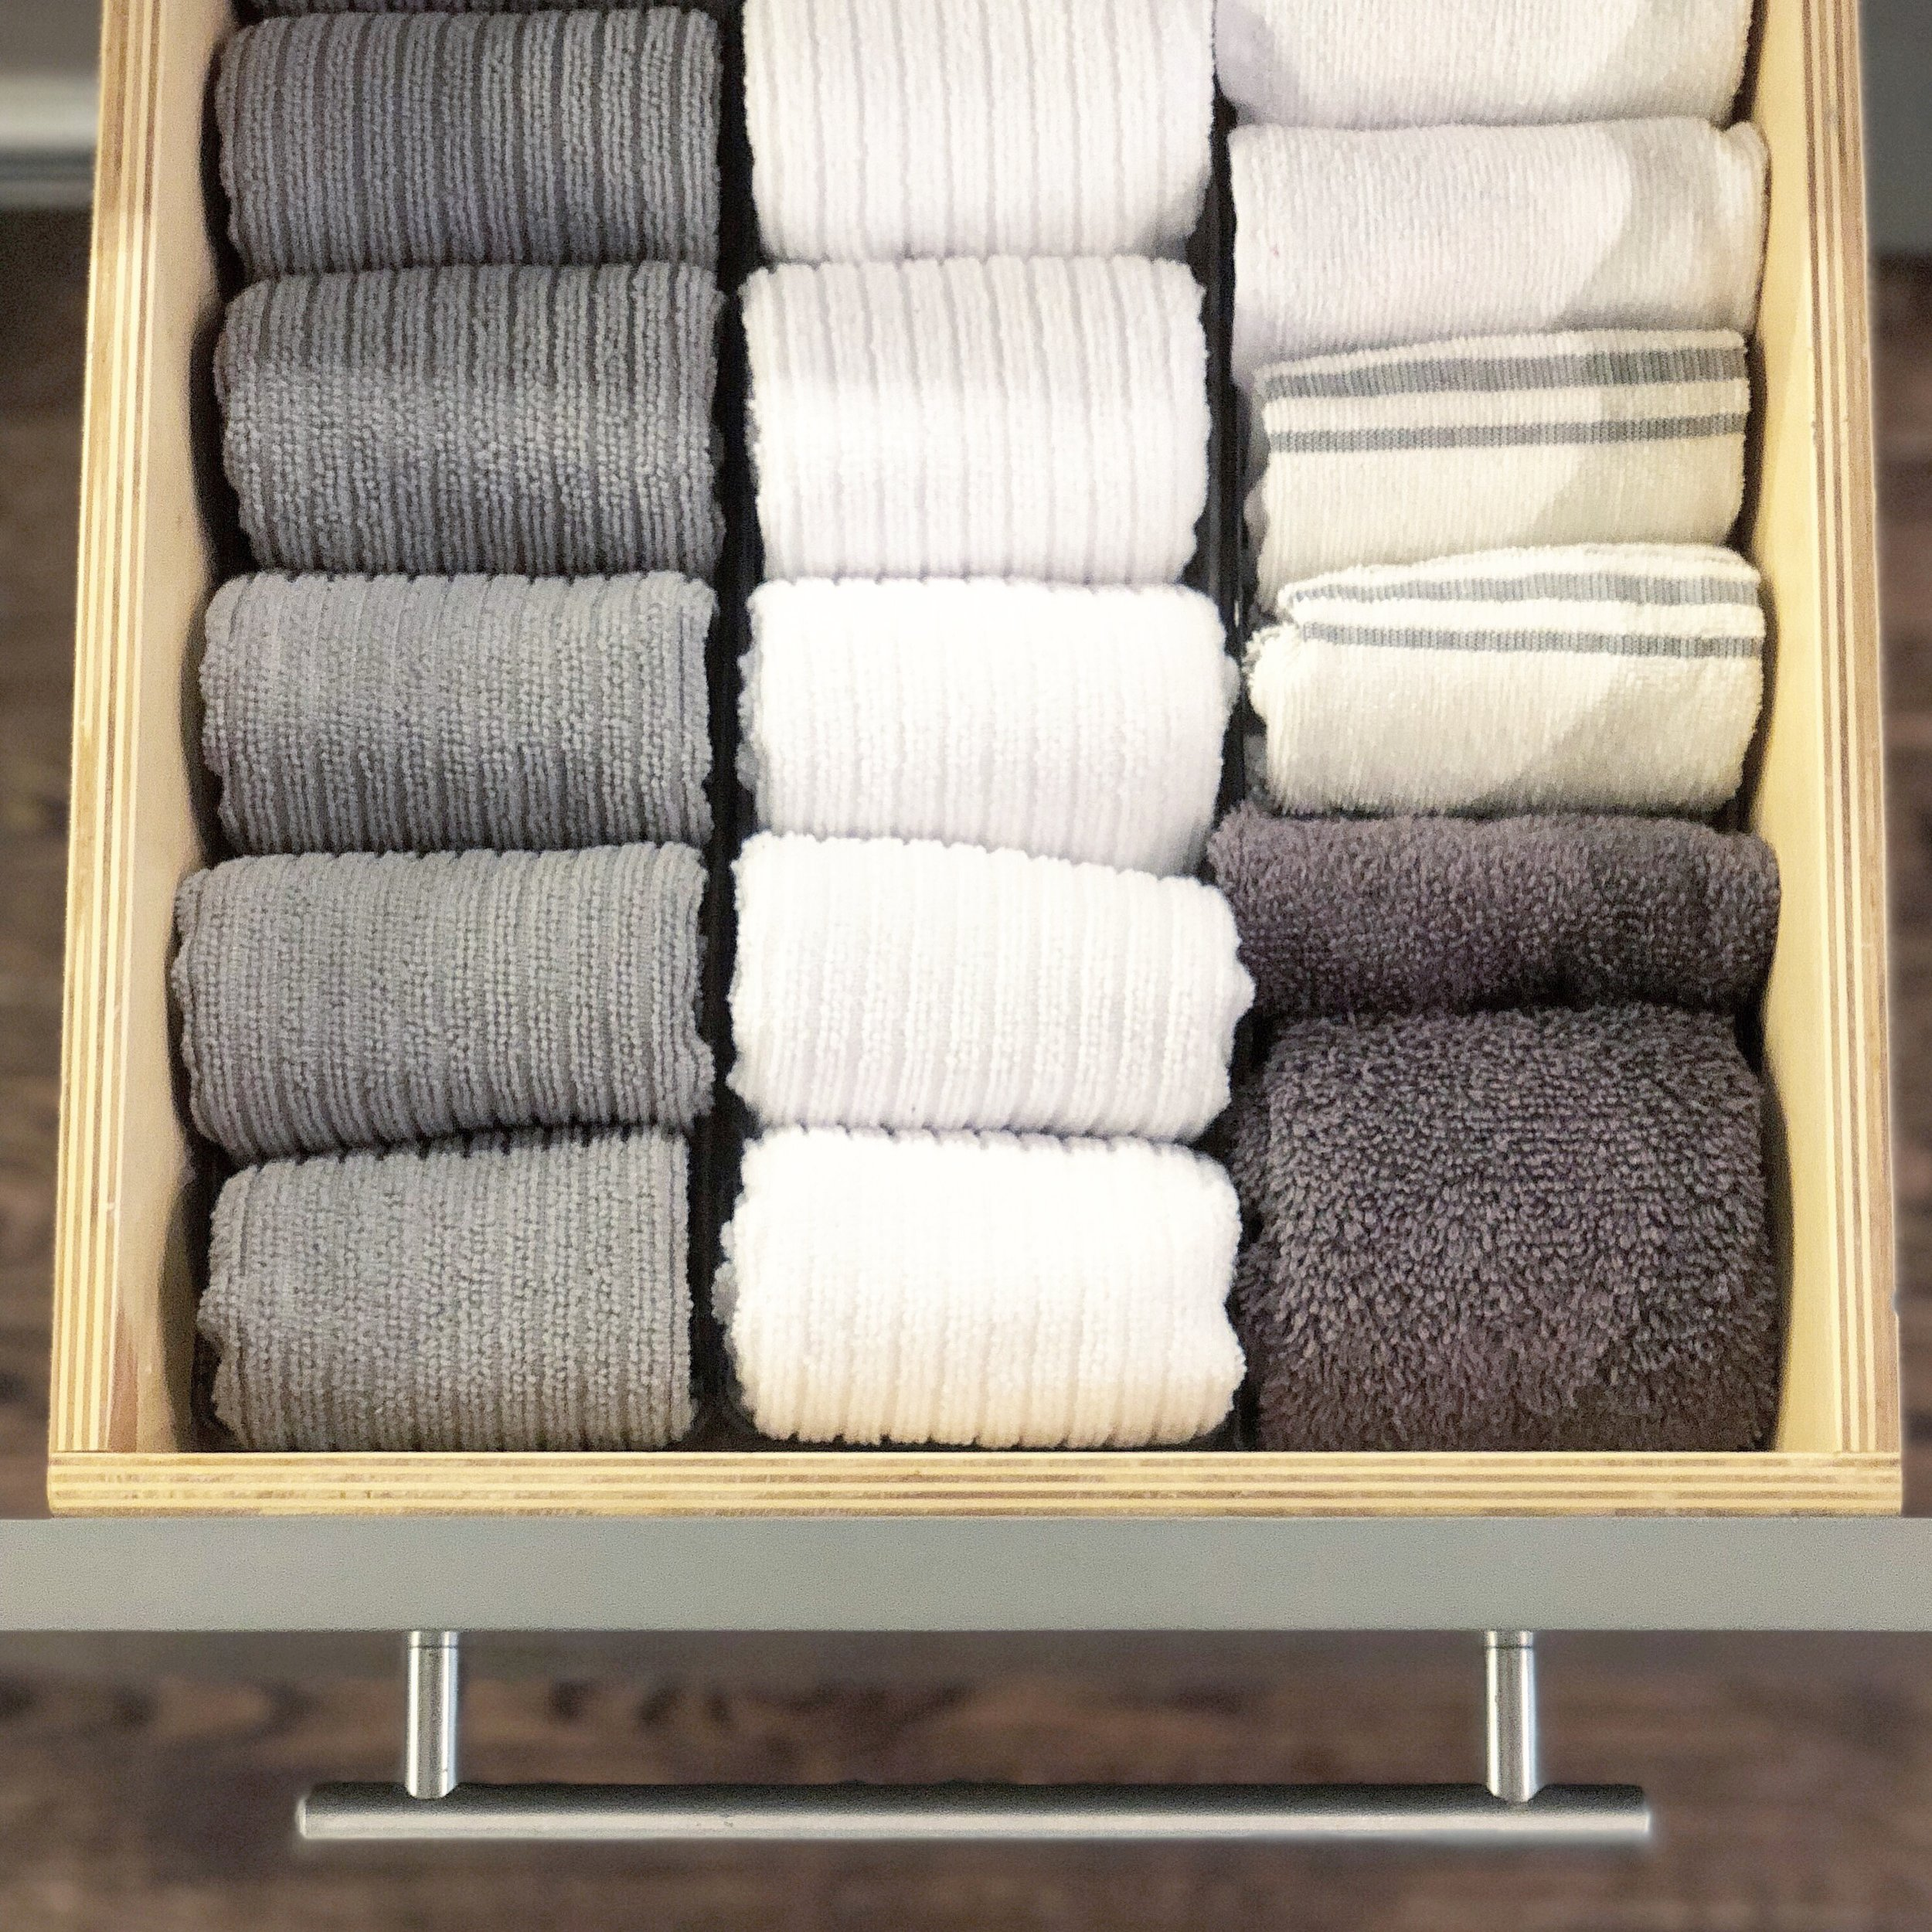 Tip #4: File folding. Transform your drawers by file folding your items, also known as the KonMari method. This folding style works everywhere in the home from your dish towels to your denim. Instead of stacking items and not being able to see everything, file folding allows you to see it all at once!  We hope you've enjoyed these tips! - The OC CO. Team